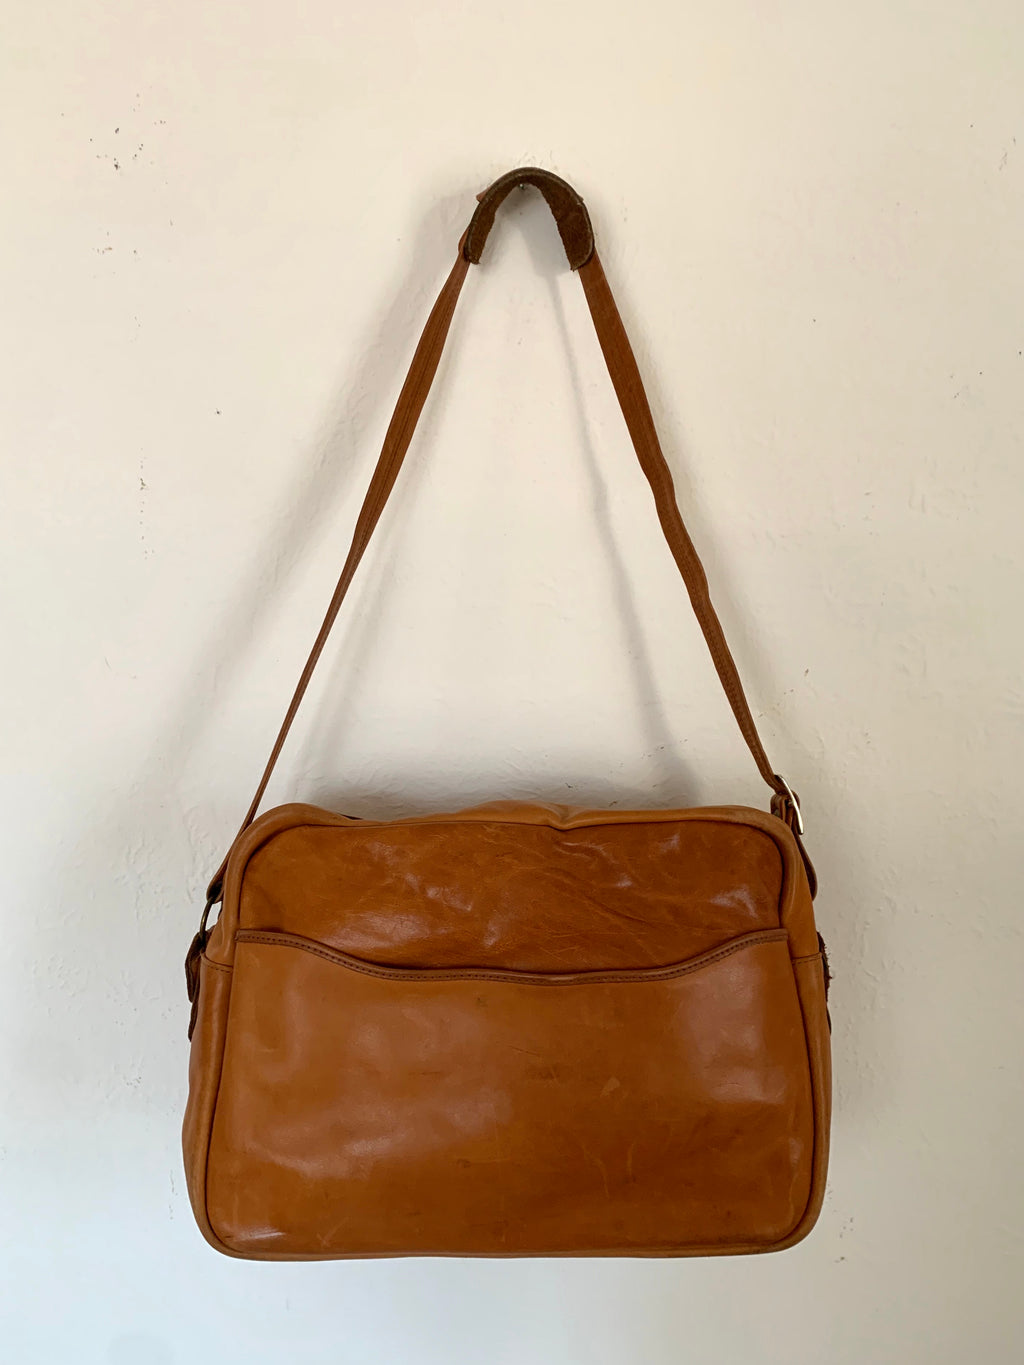 Vintage Leather Travel Bag